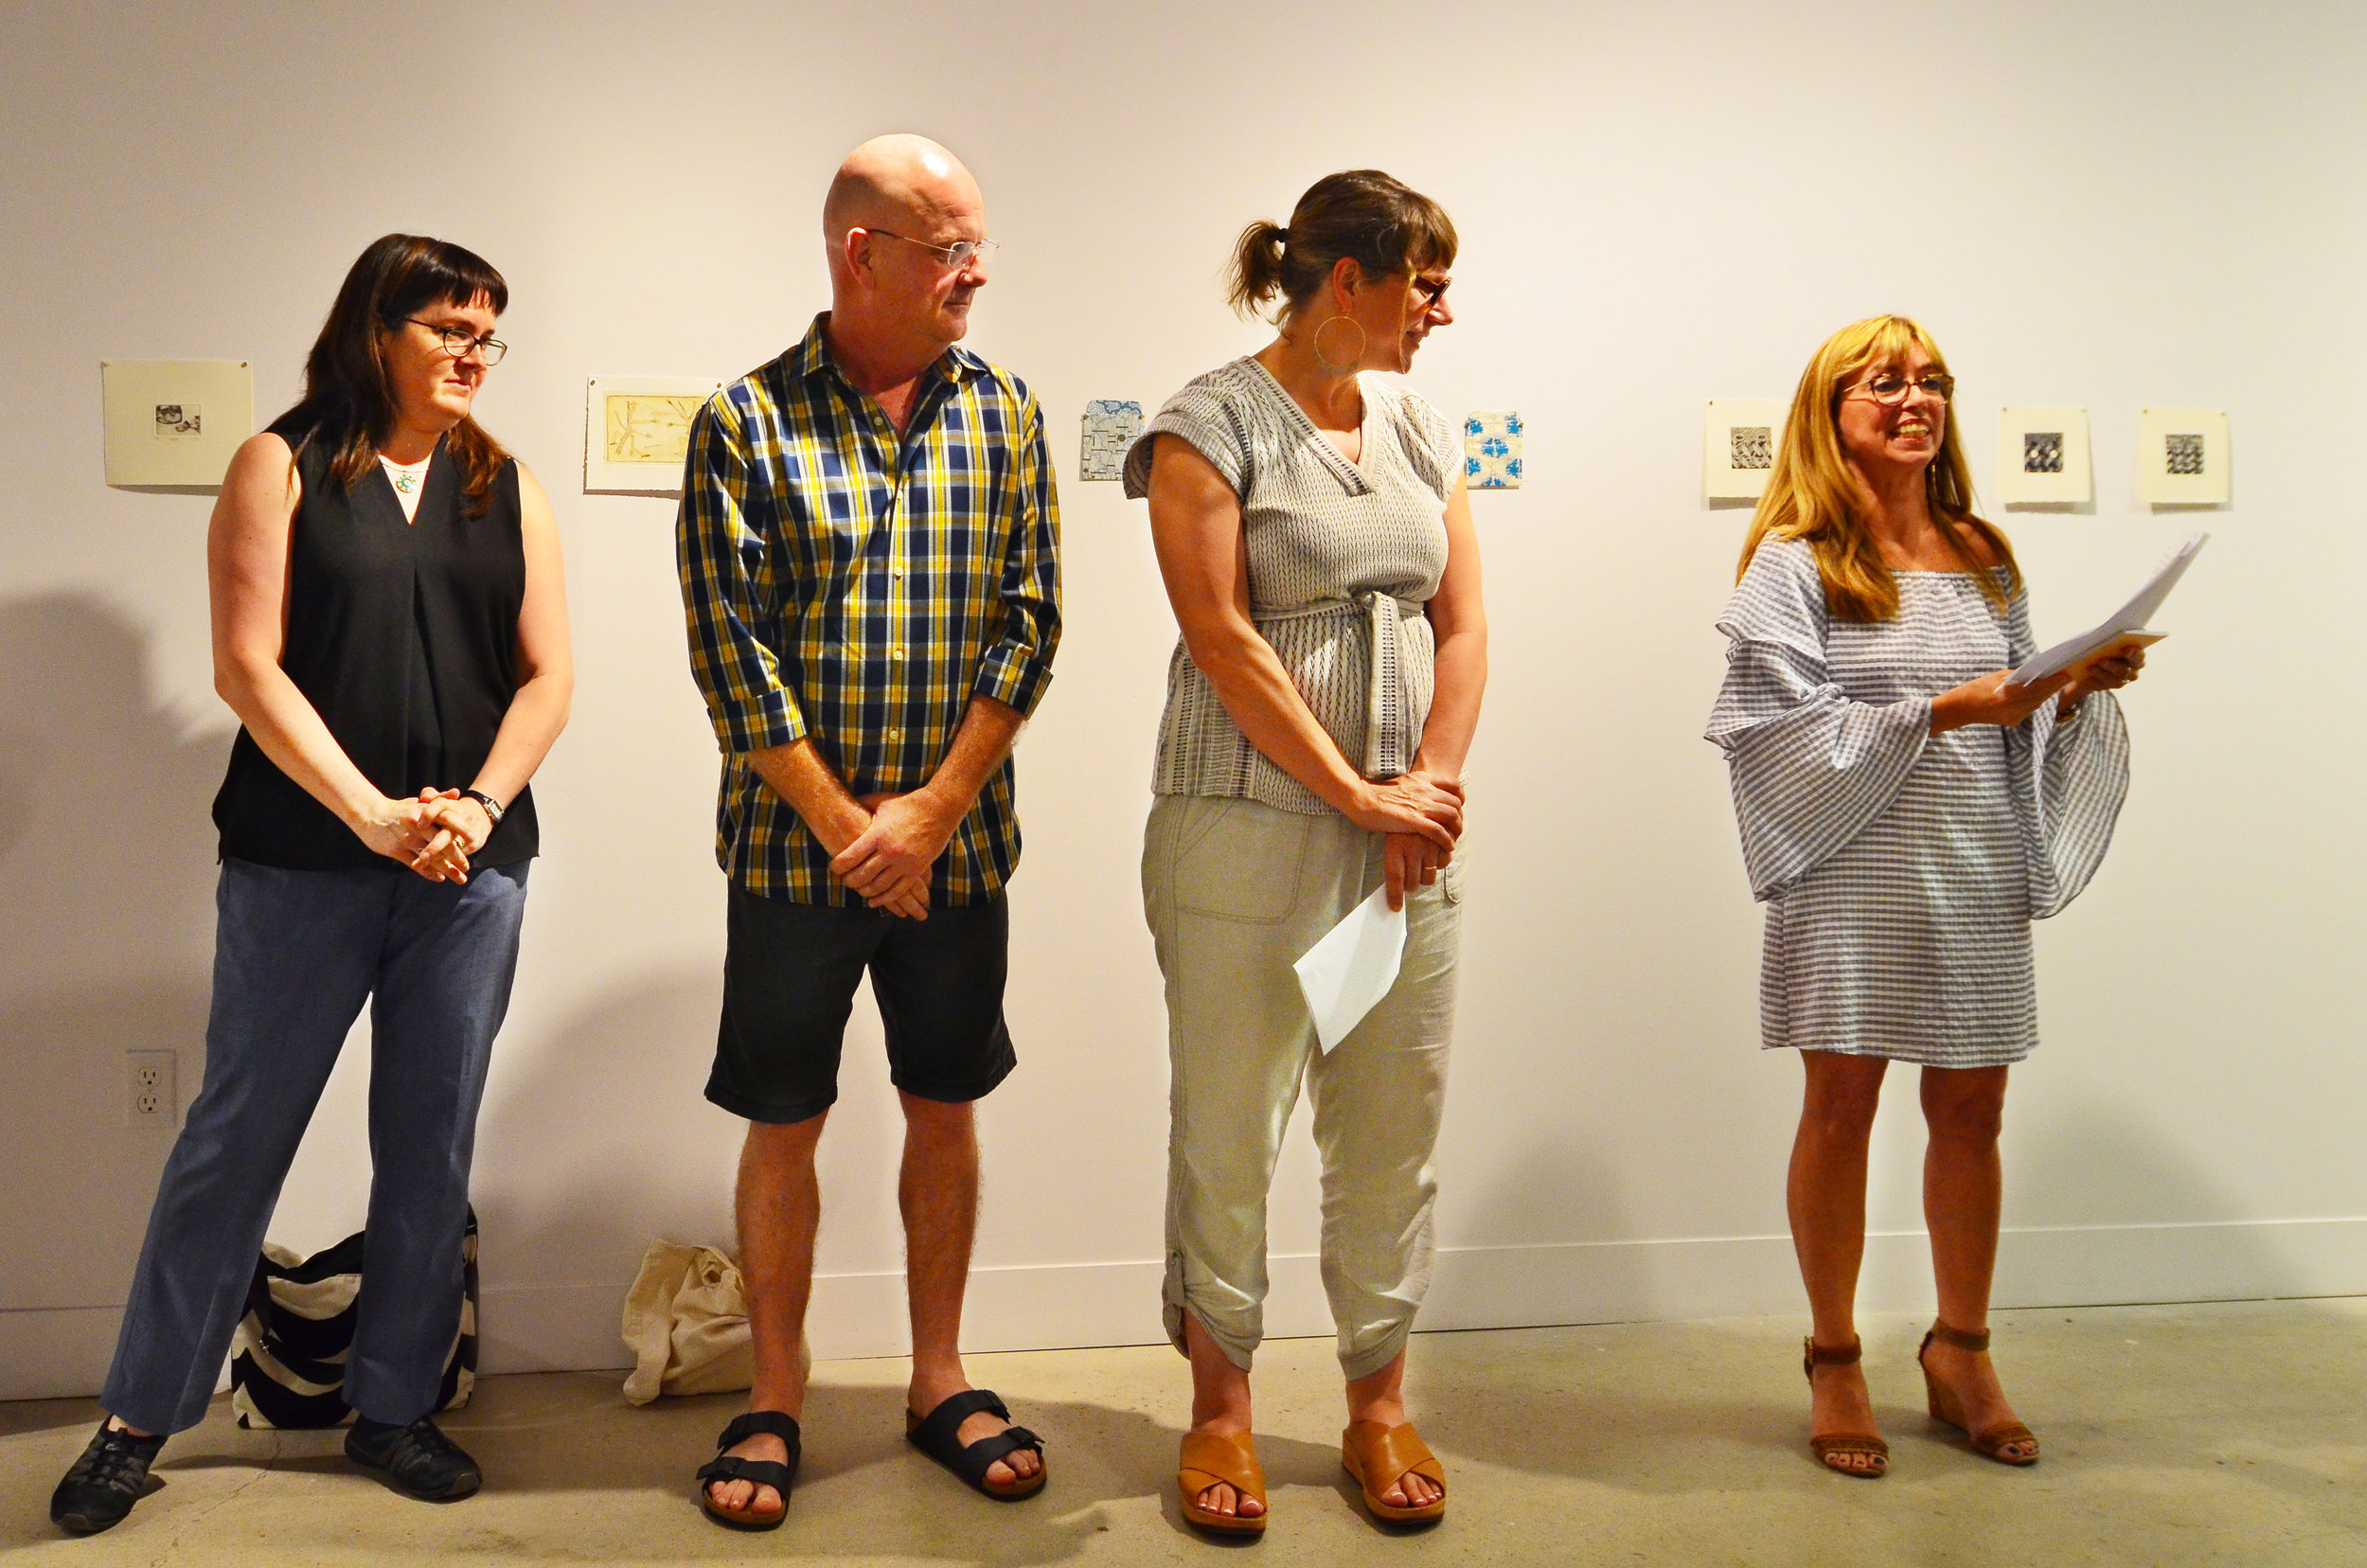 Our Jurors:James Patten, Tara Cooper and Cassandra Getty with Print London founder Joscelyn Gardner